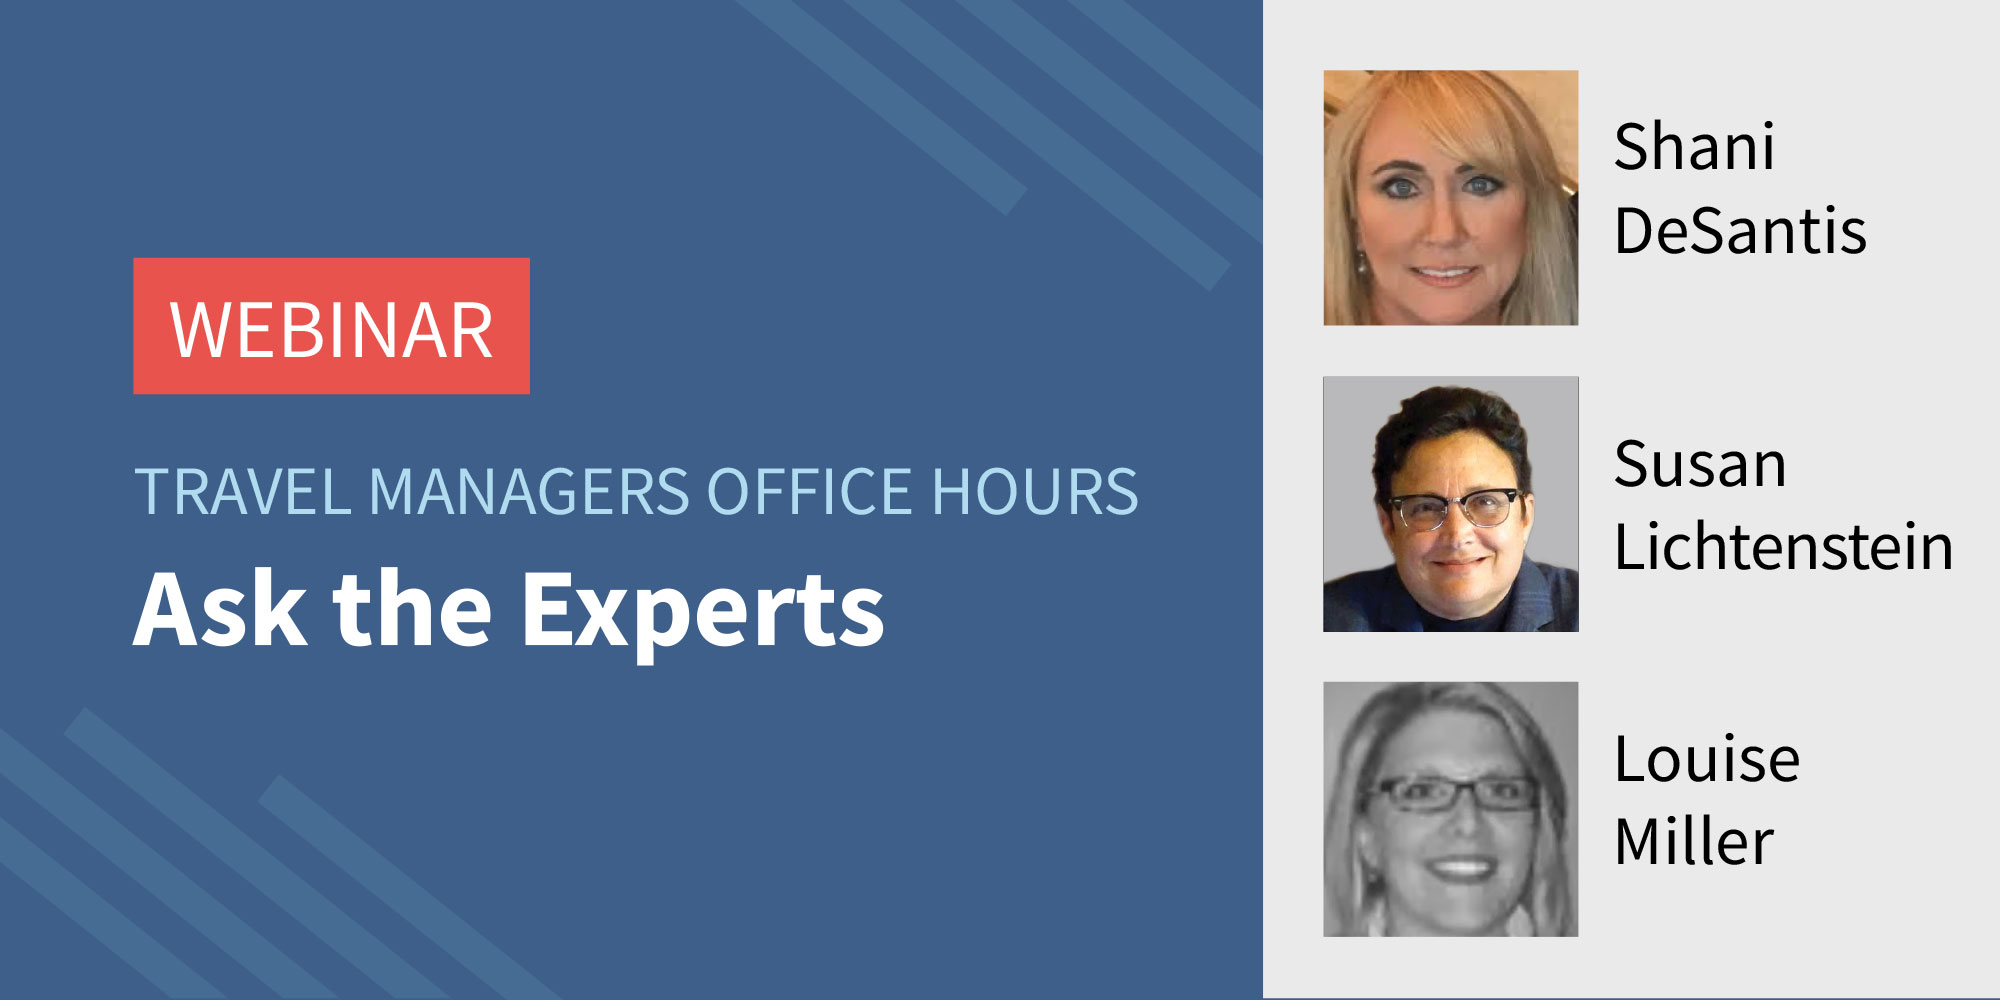 Traxo Travel Managers Office Hours Webinar Ask the Experts Featured Image